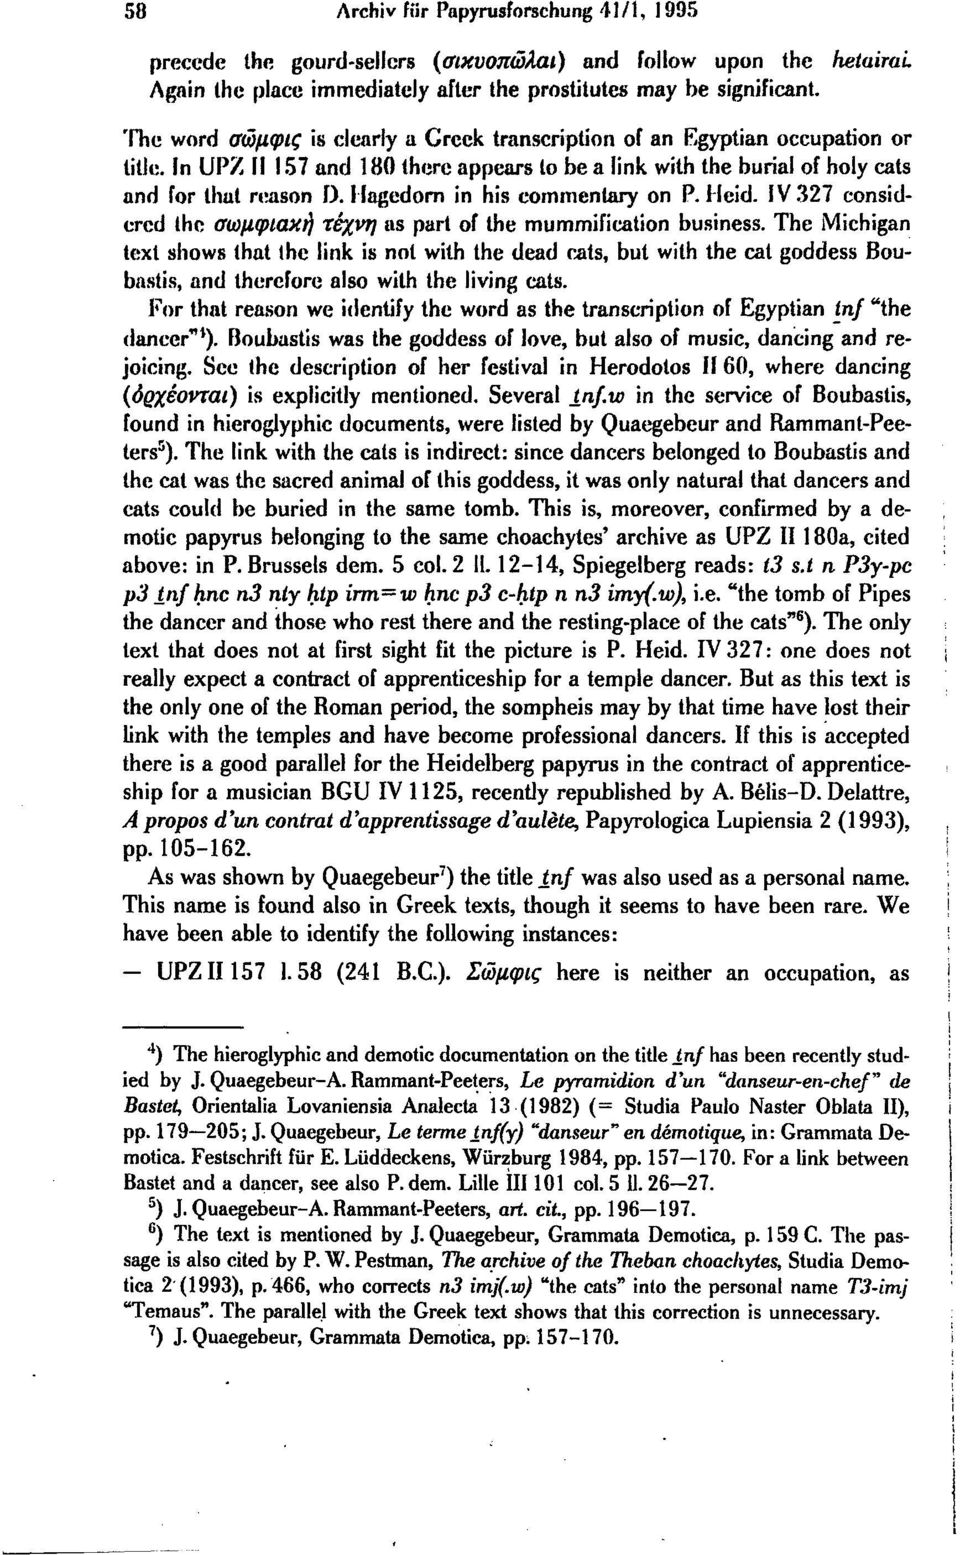 Hagedorn in his commenlary on P. Heid. IV 327 considercd the αωμφιαχή τέχνη s part of the mummification business.